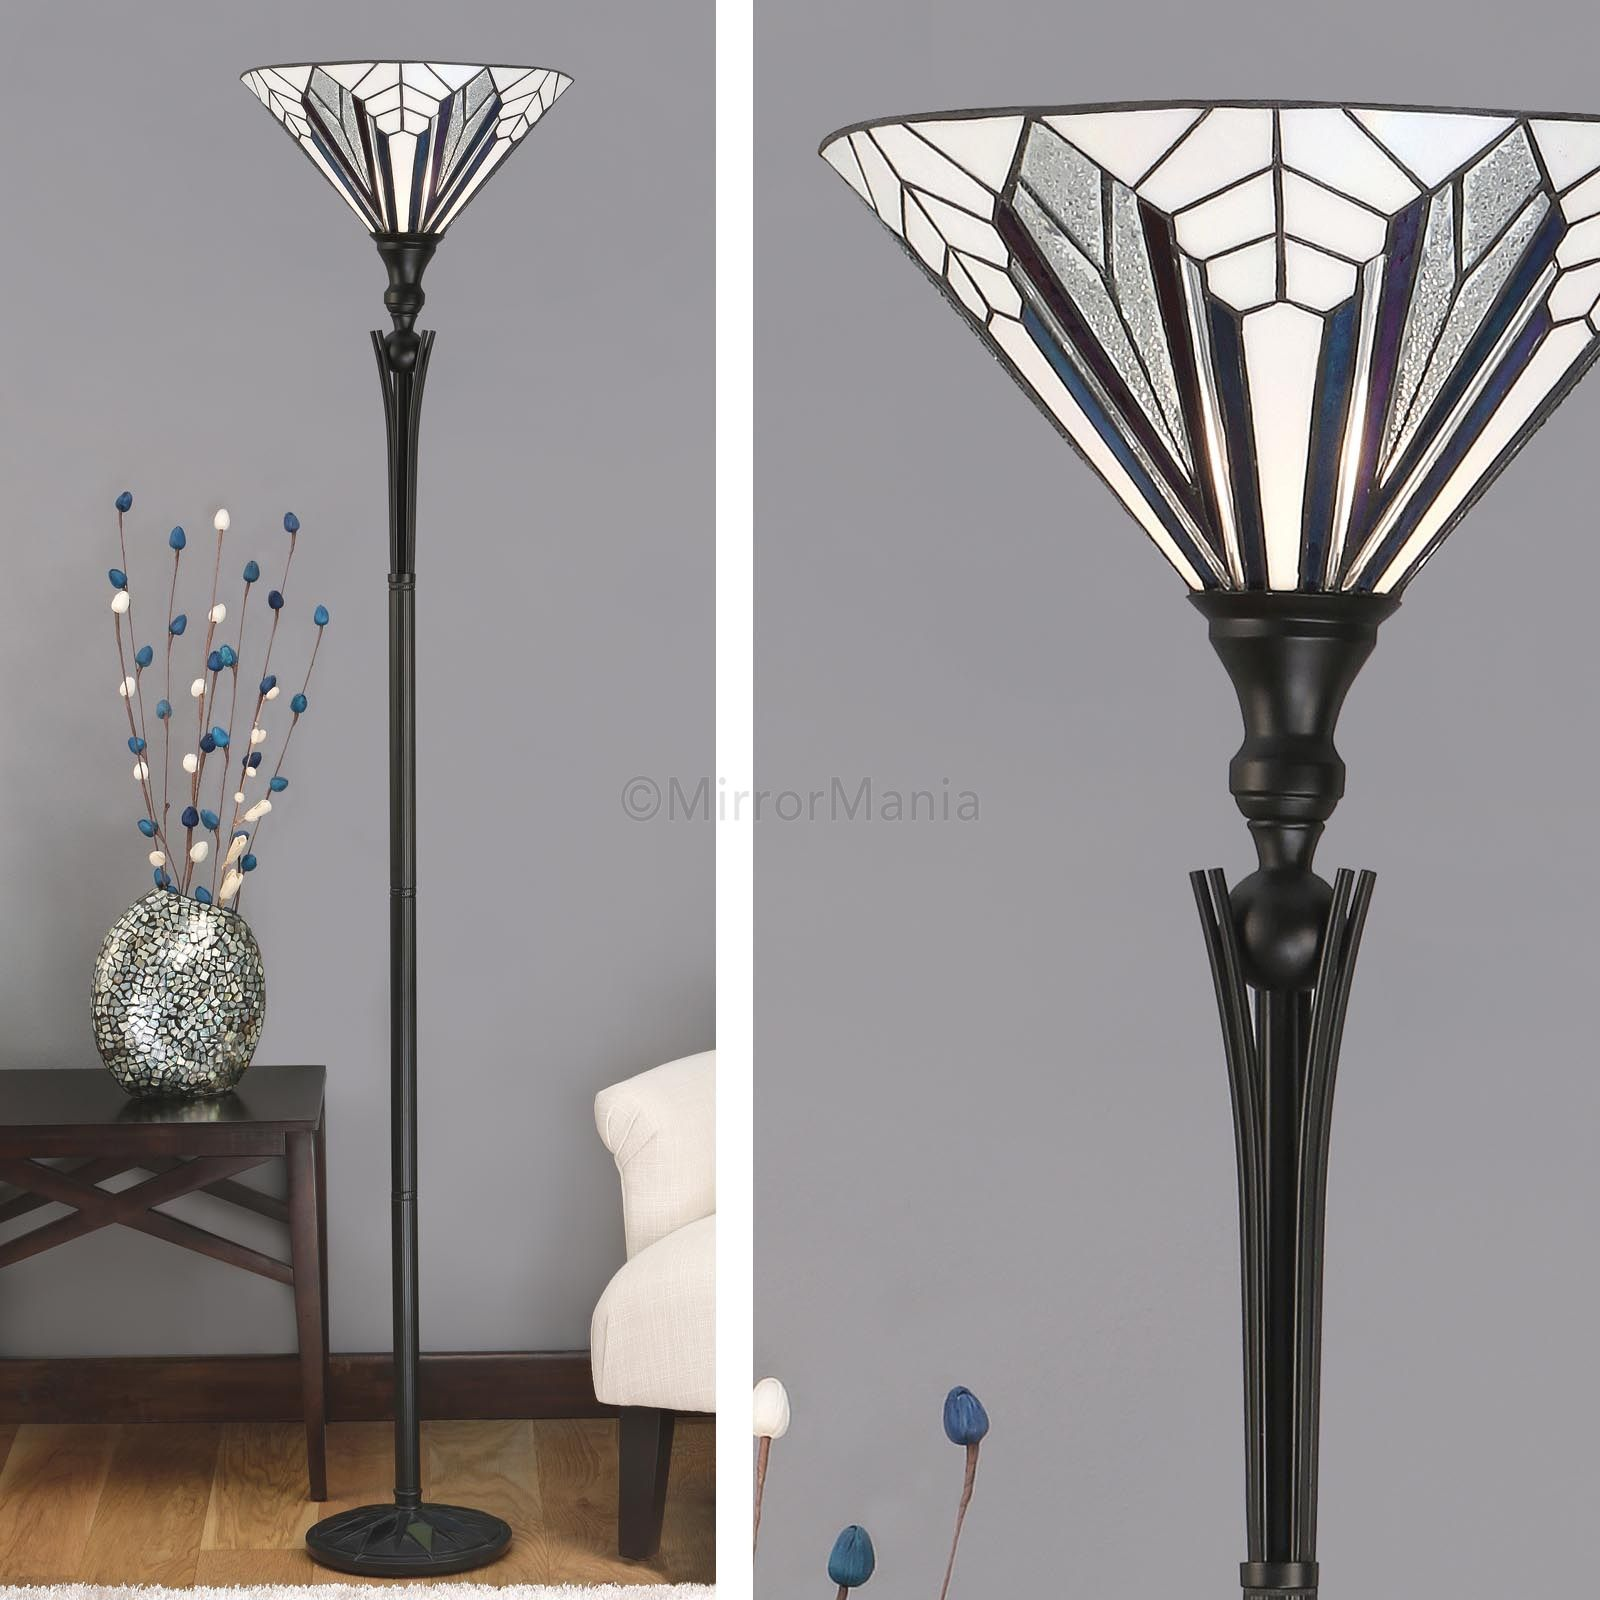 Astoria range art deco tiffany uplighter floor lamps lighting astoria range art deco tiffany uplighter floor lamps lighting home decor aloadofball Image collections